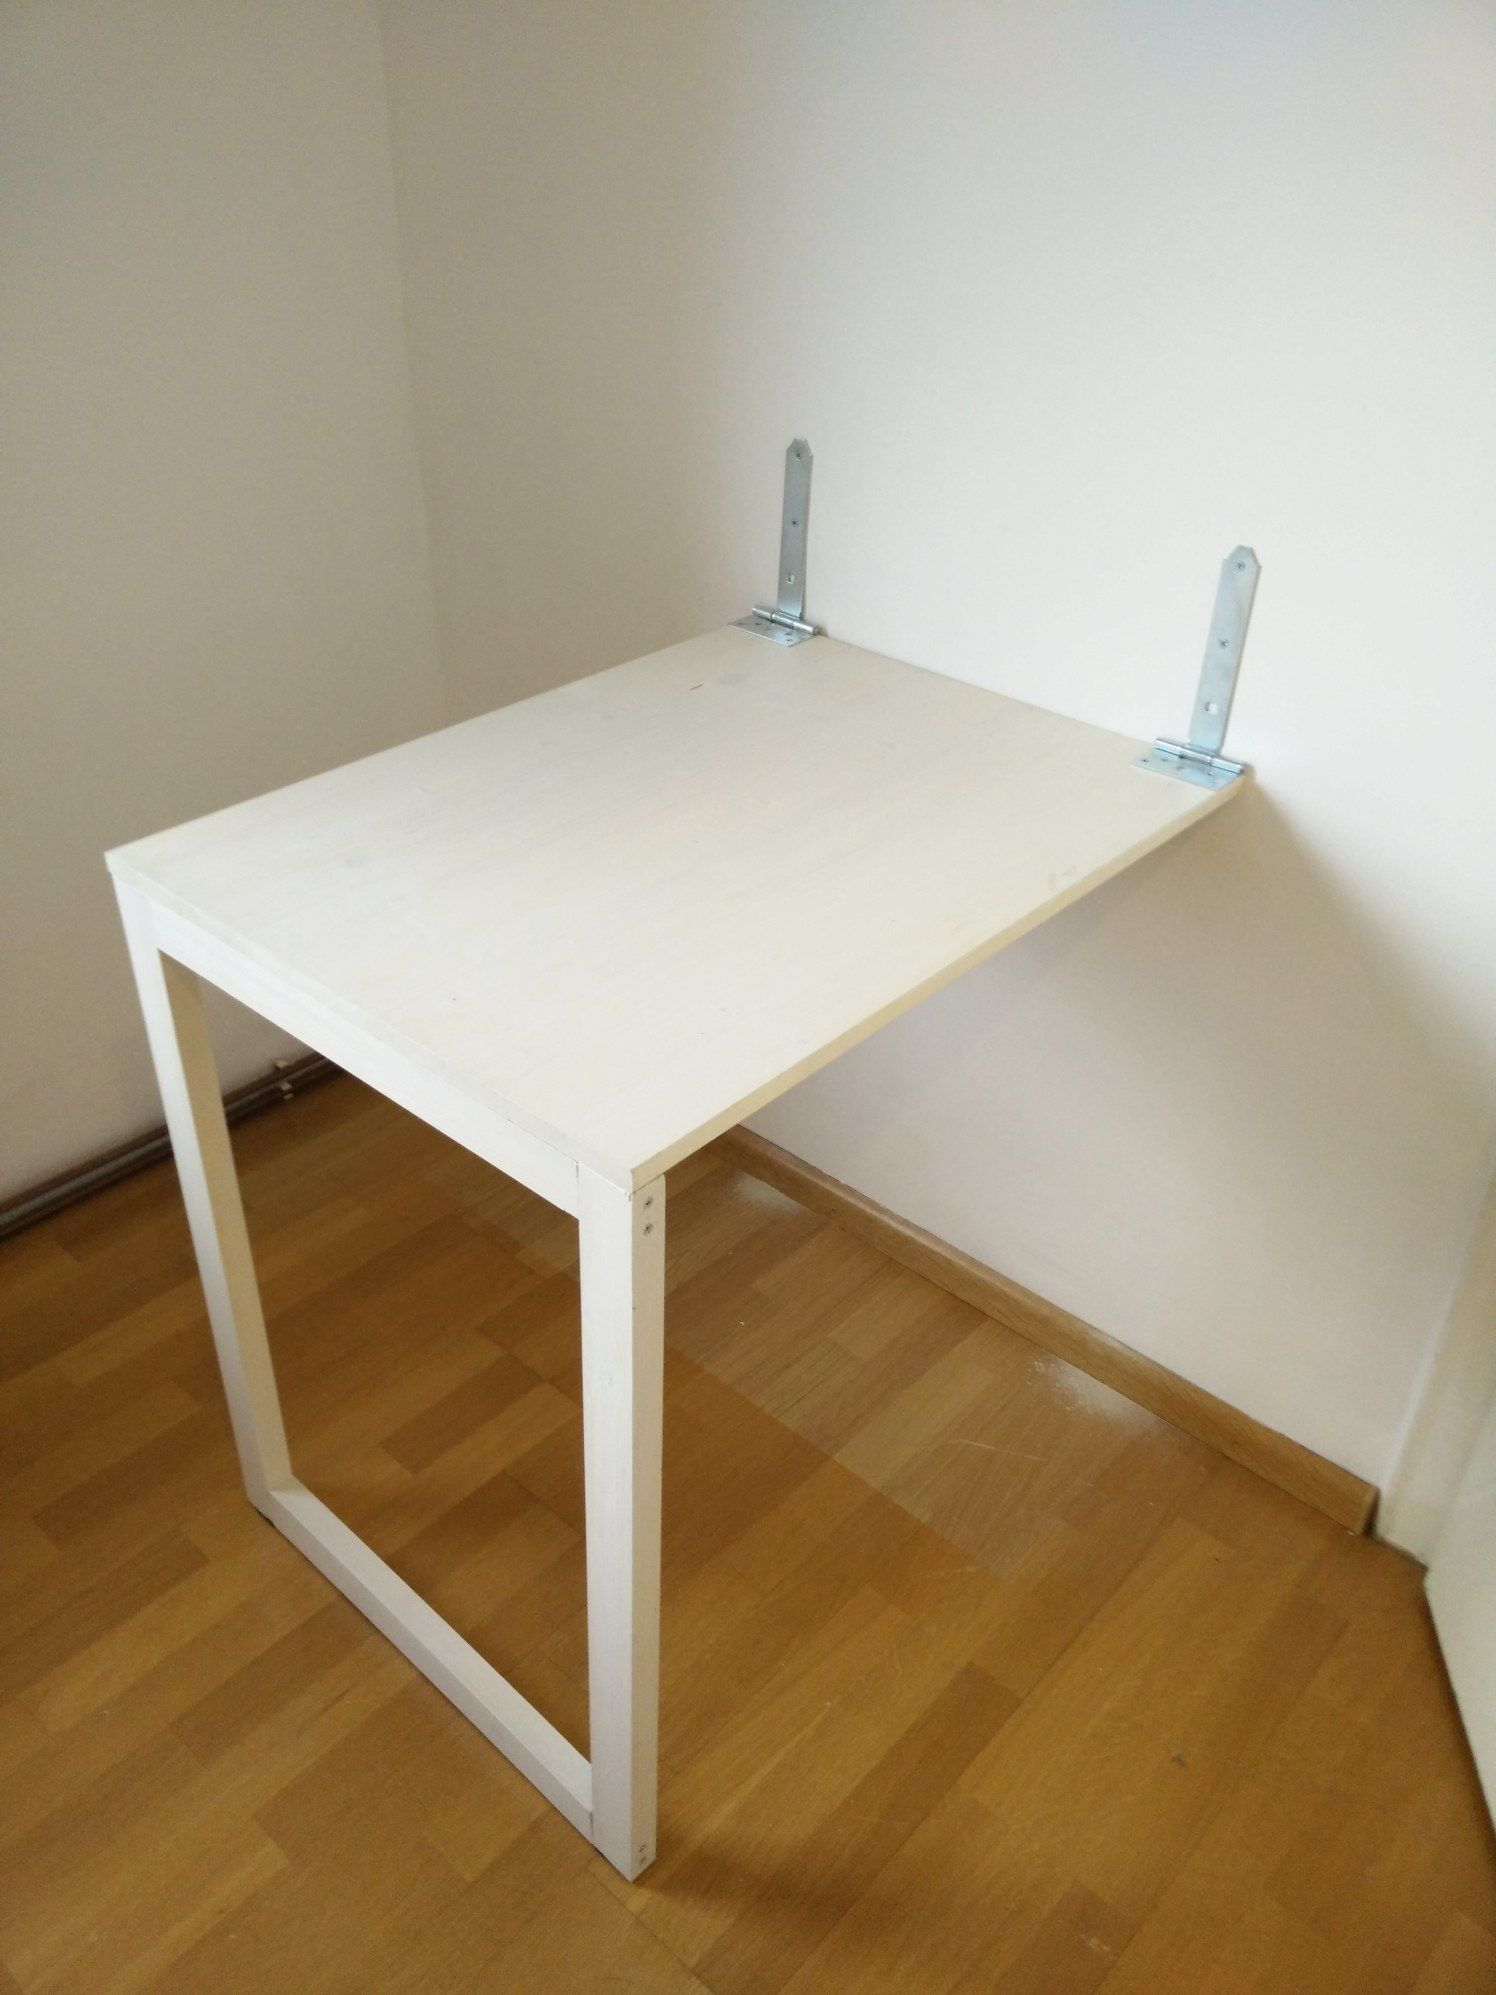 Diy Kleine Küche Tisch Diy Diy Wooden Table Projekte Pinterest